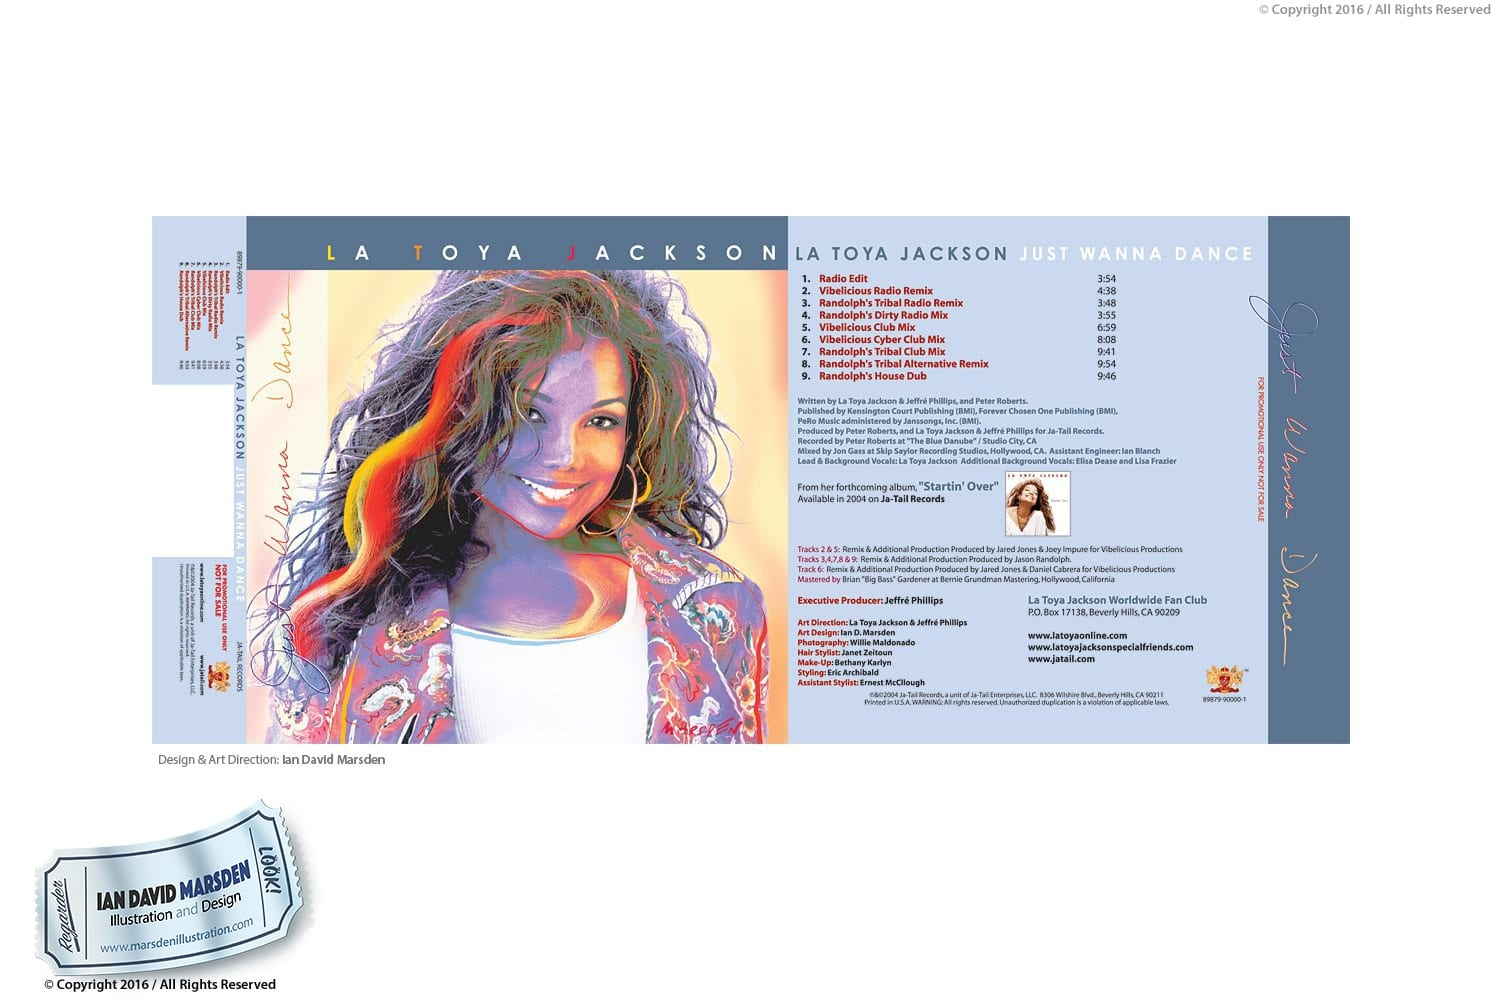 La Toya Jackson album cover design